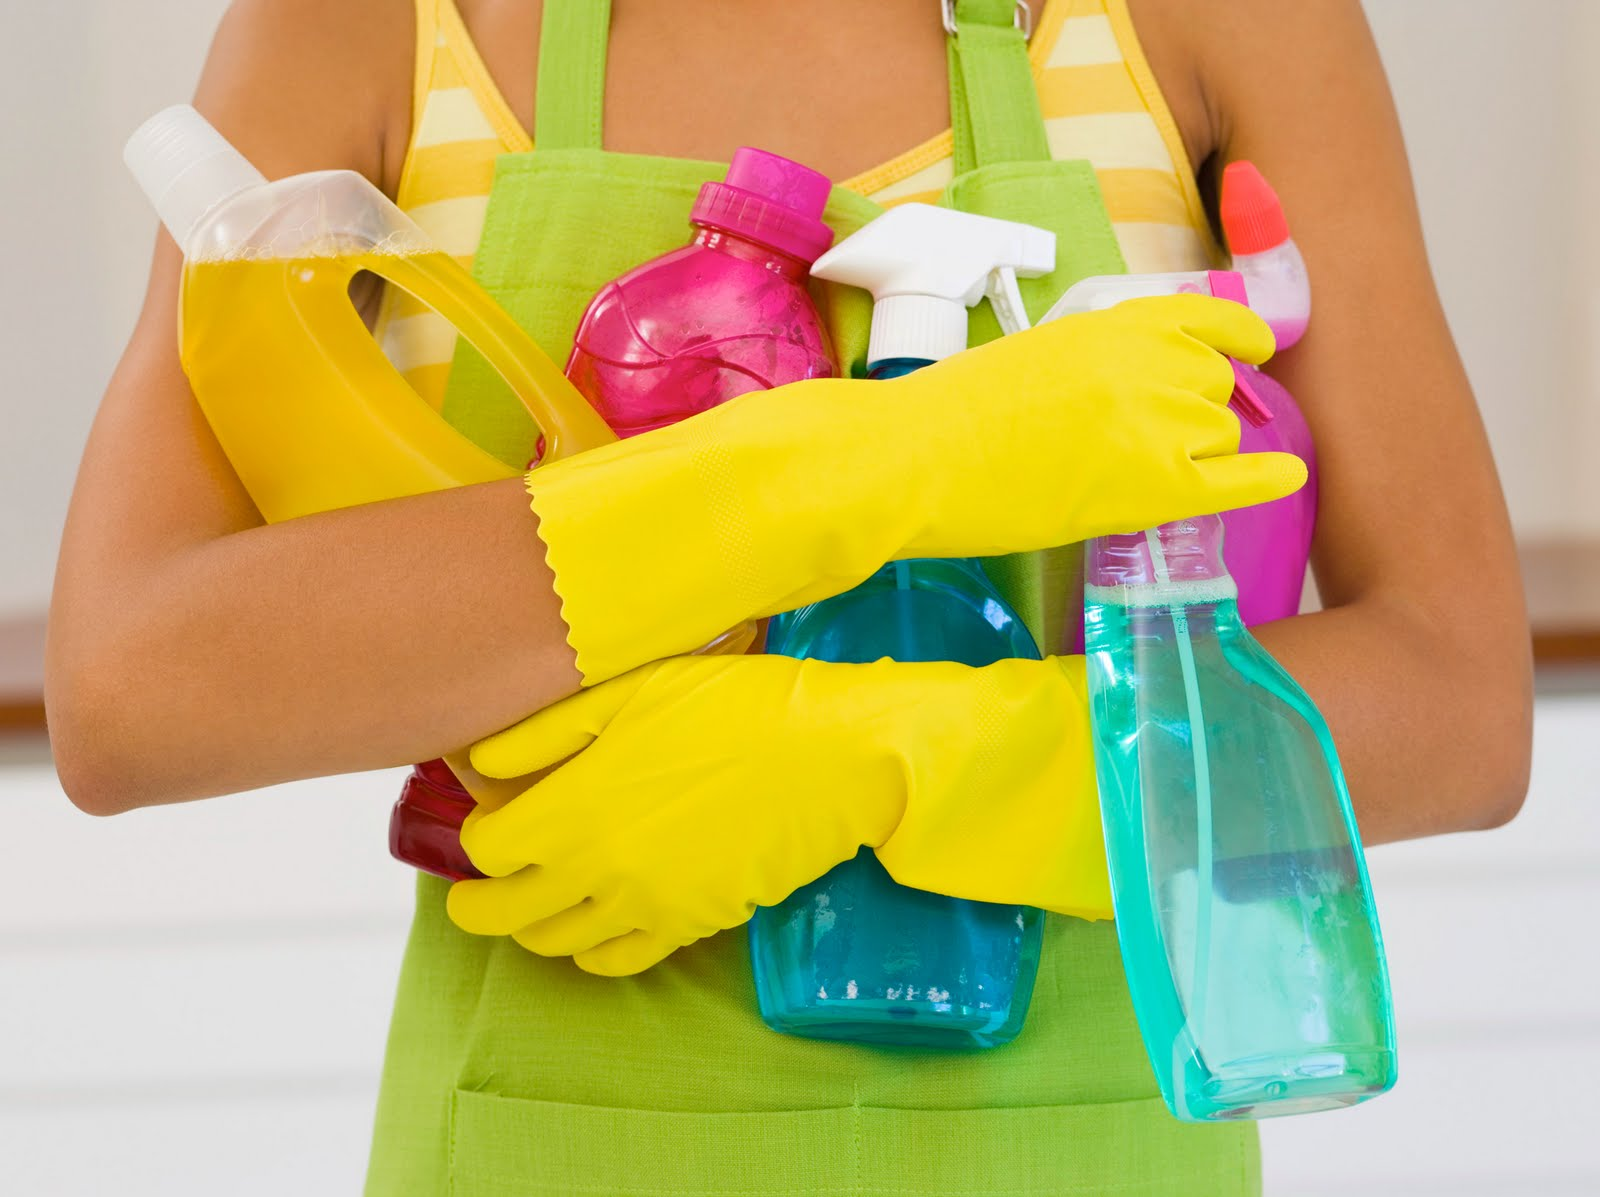 Top 10 Cleaning Tips From the Pros3